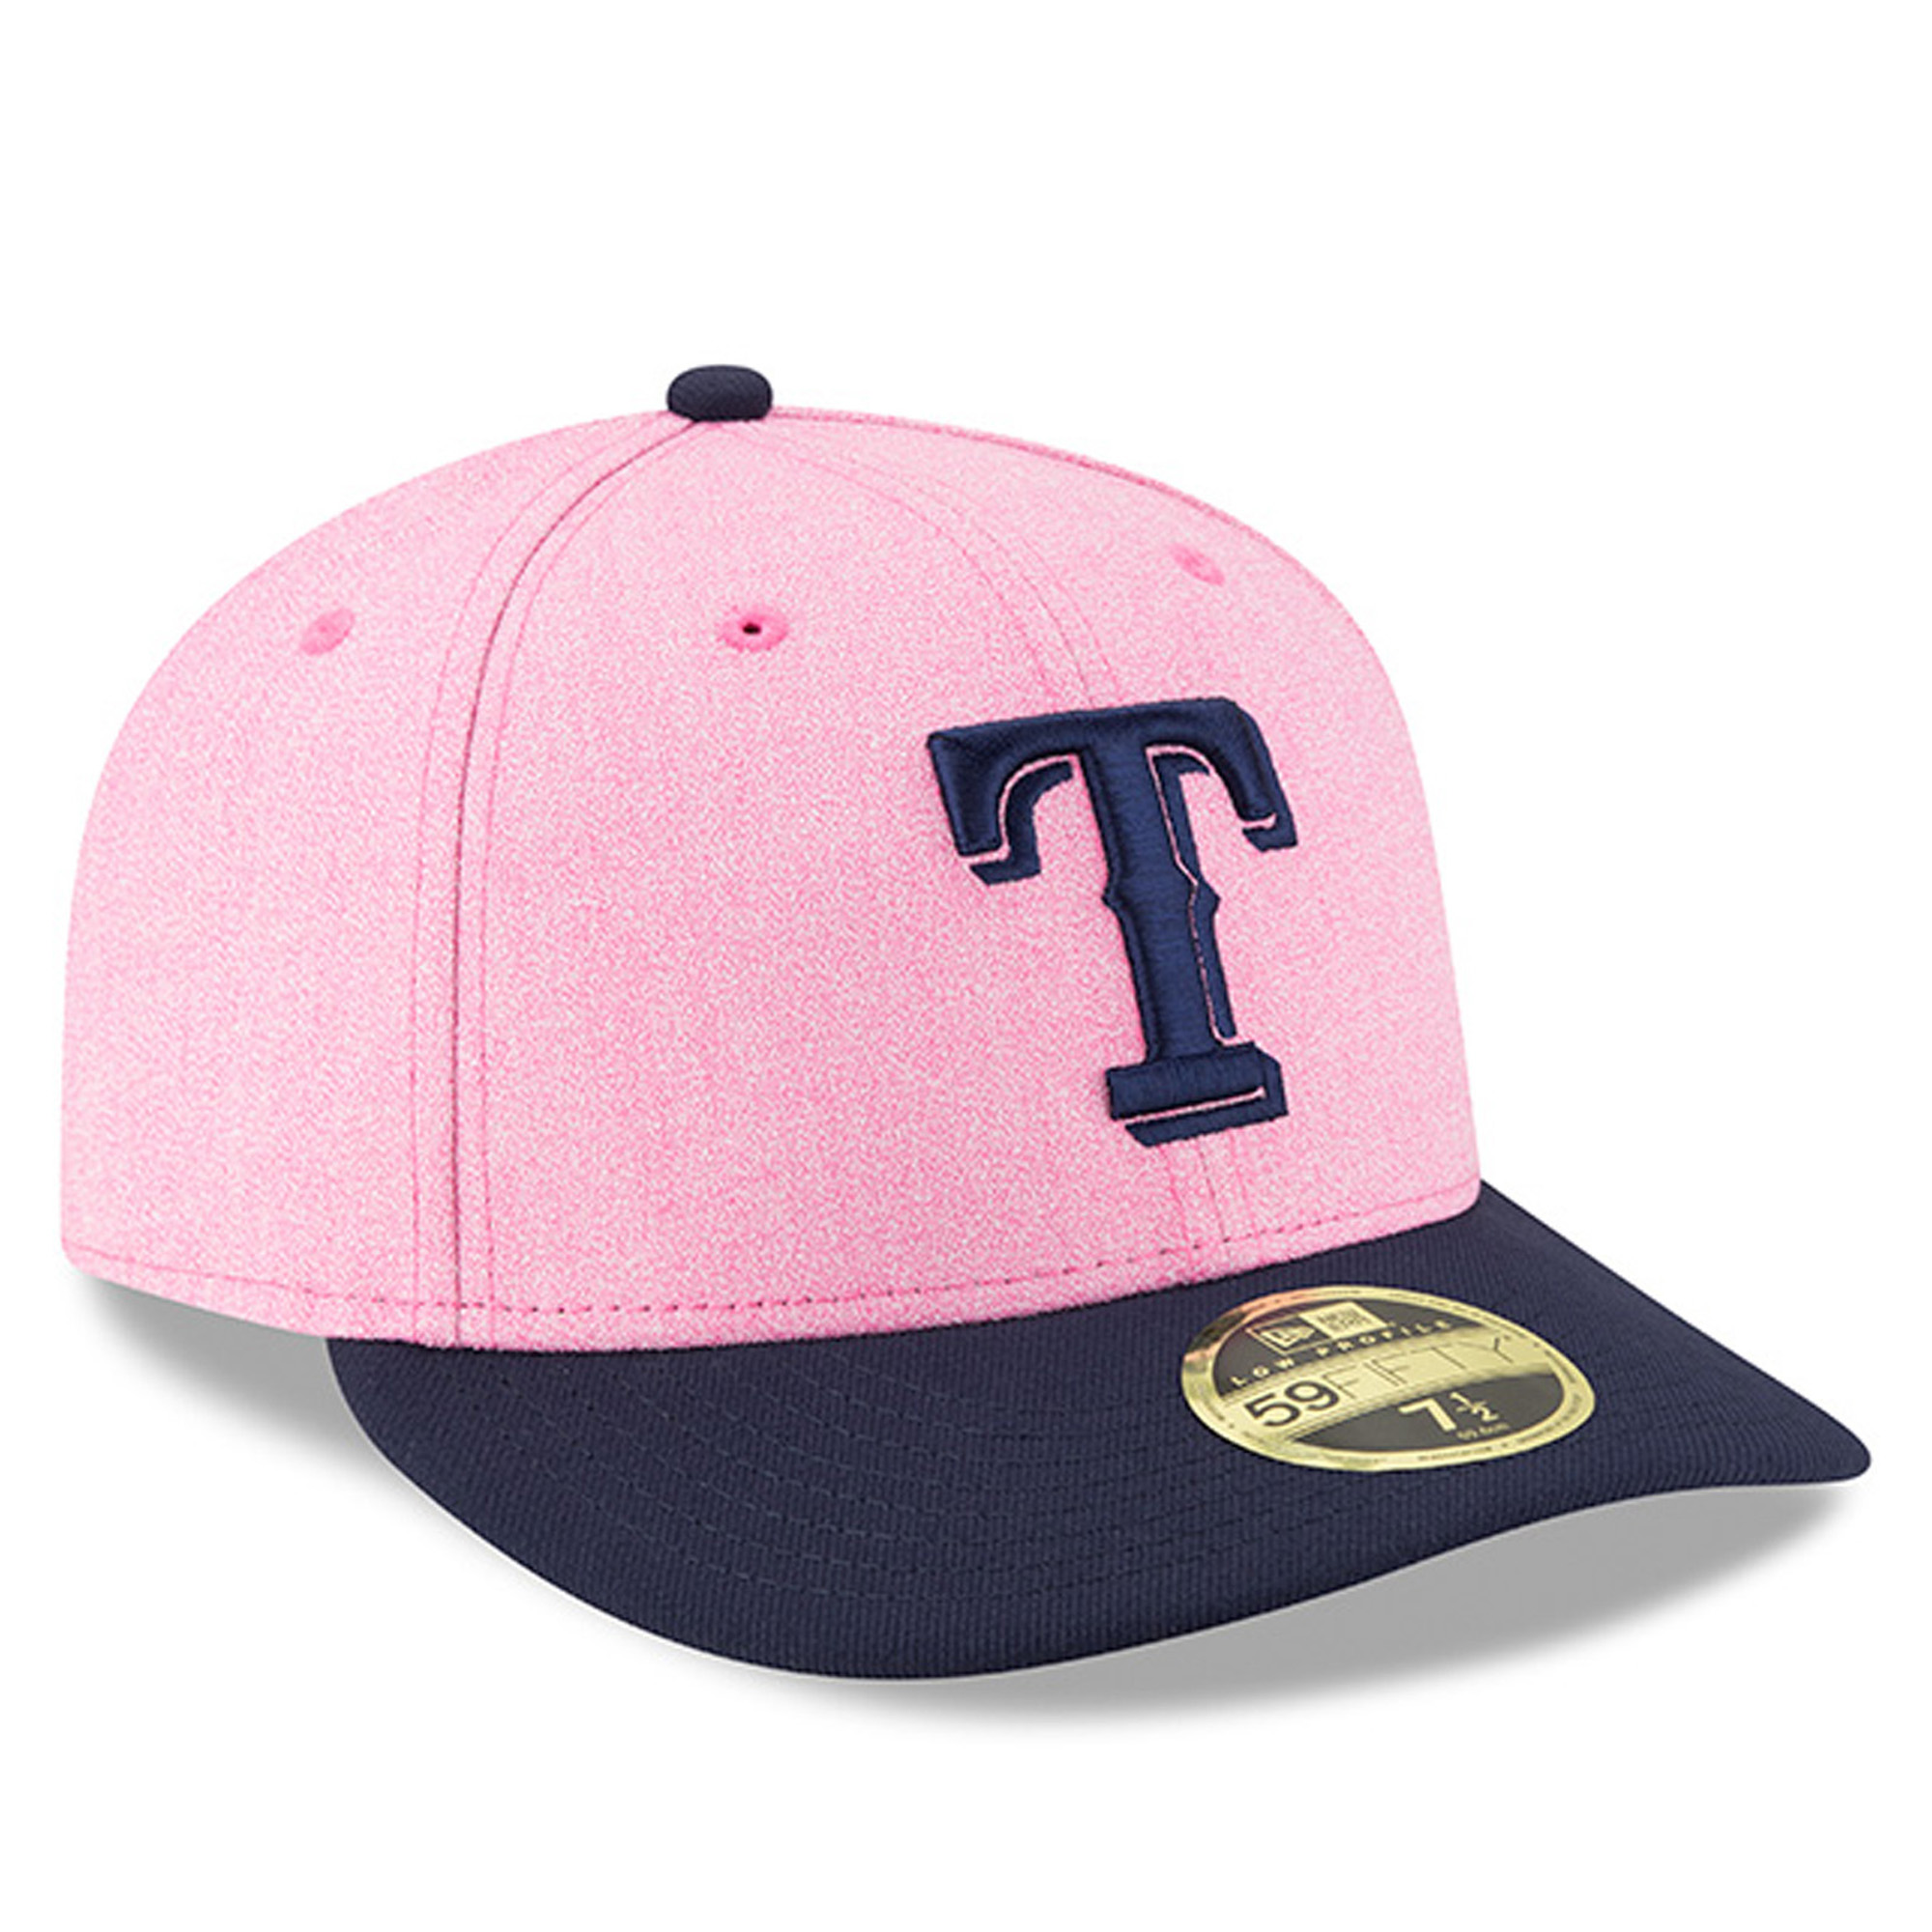 best service 6f2f8 e8d33 Texas Rangers New Era 2018 Mother s Day On-Field Low Profile 59FIFTY Fitted  Hat - Pink Navy - Walmart.com